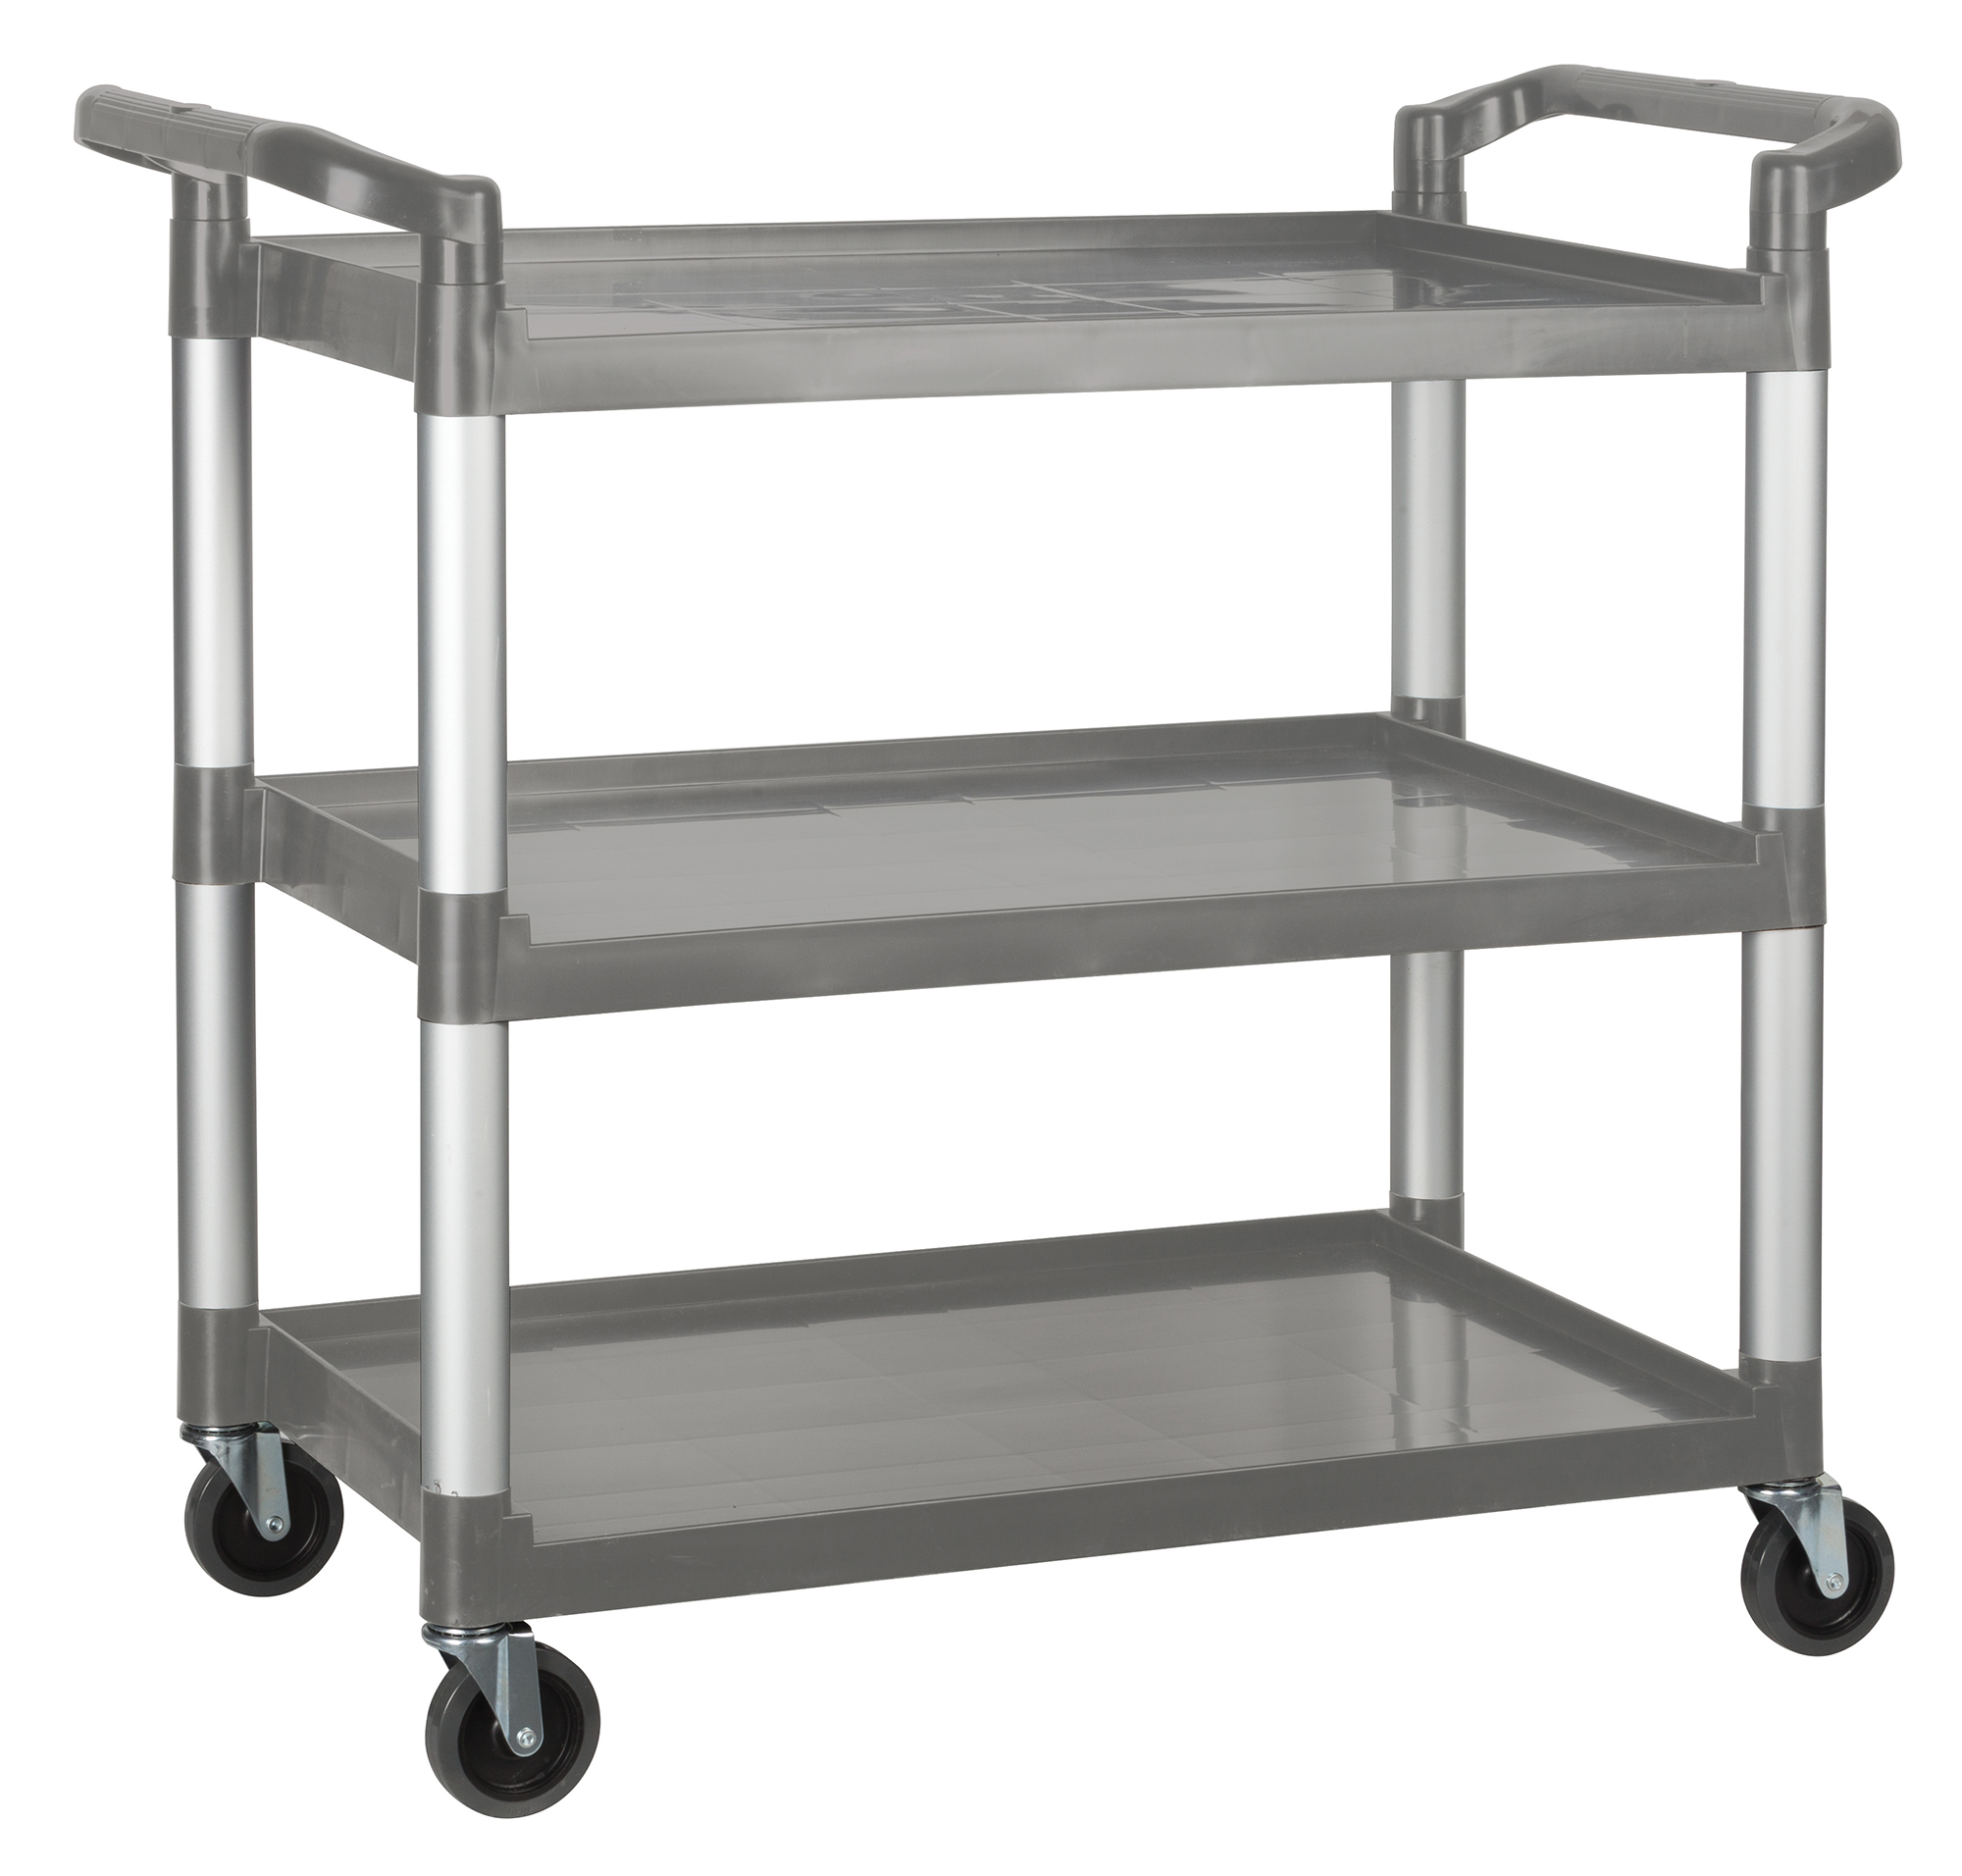 Winco UC-3019G utility & bus carts